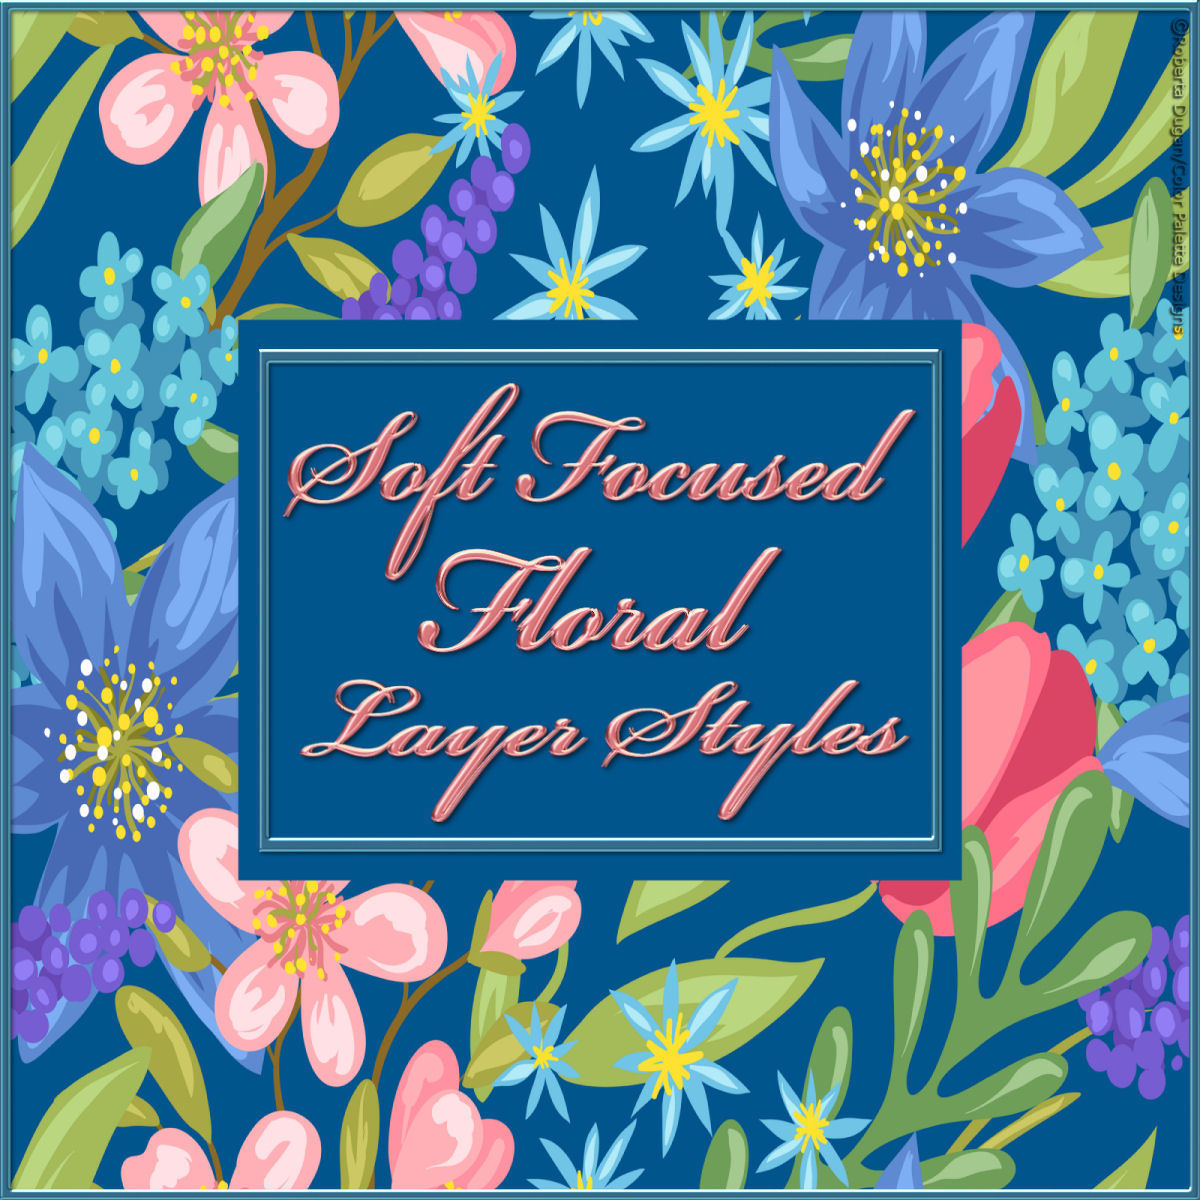 Soft Focus Floral PS Layer Styles